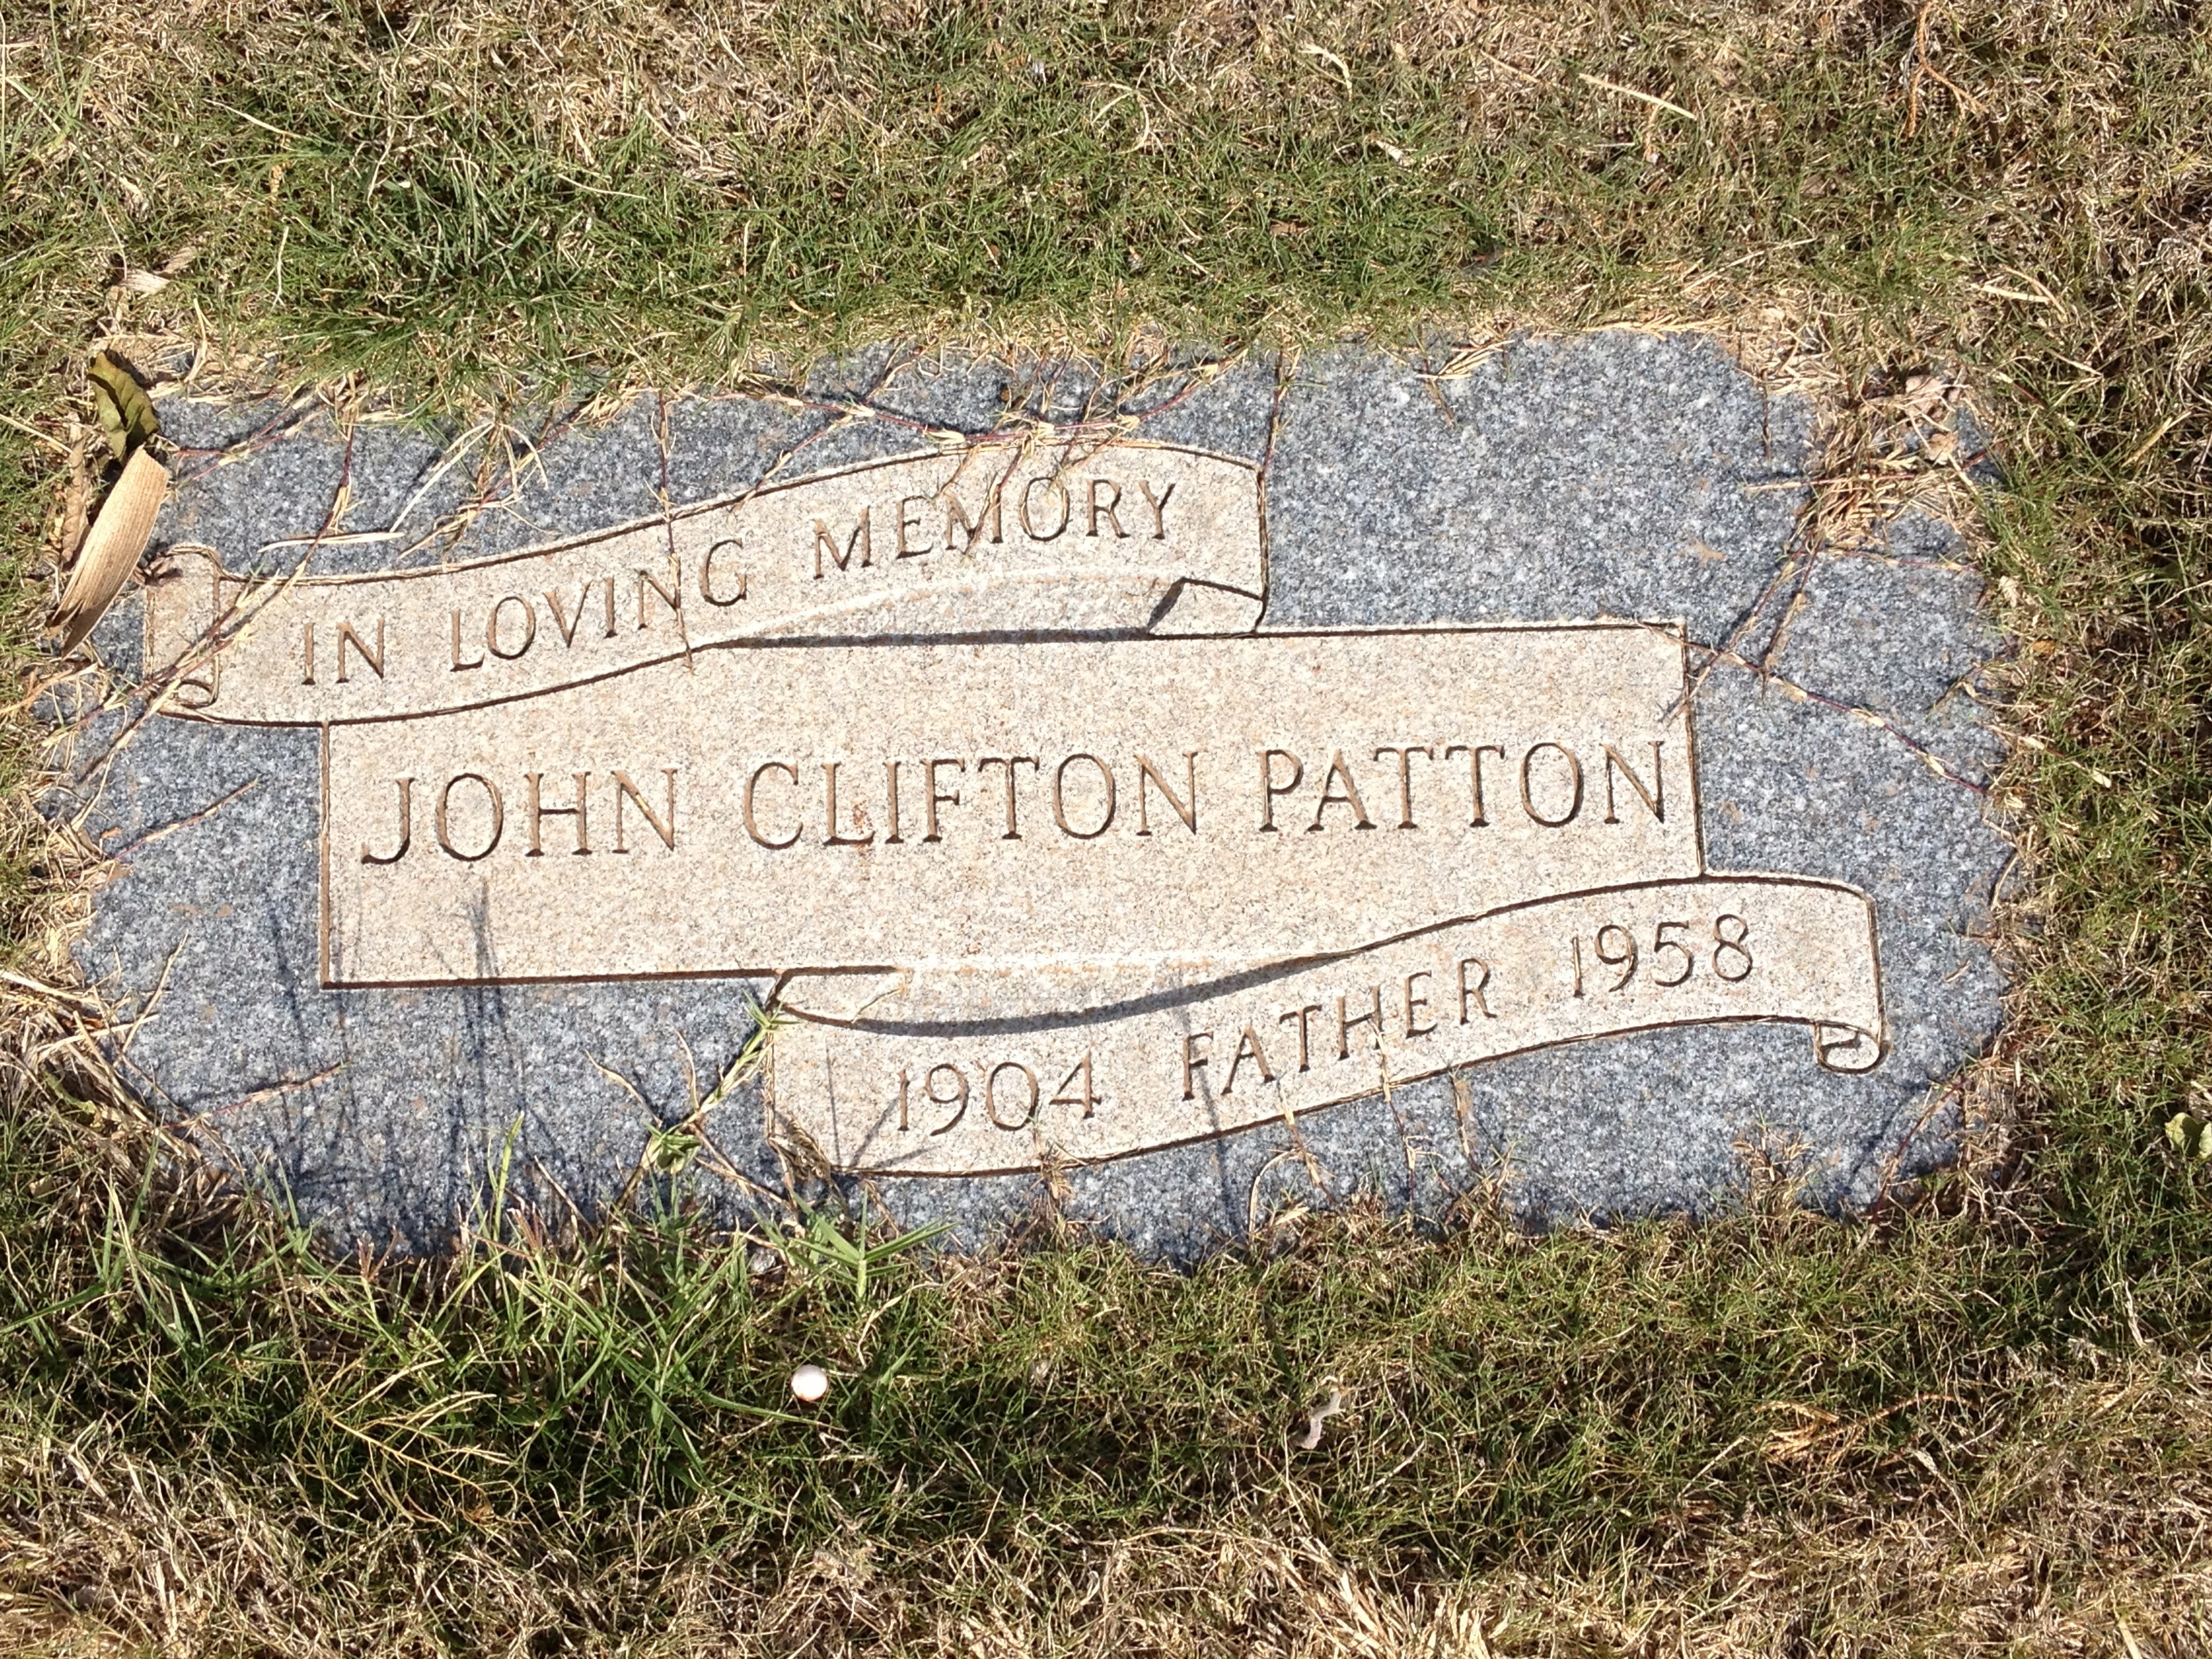 John Wesley Patton